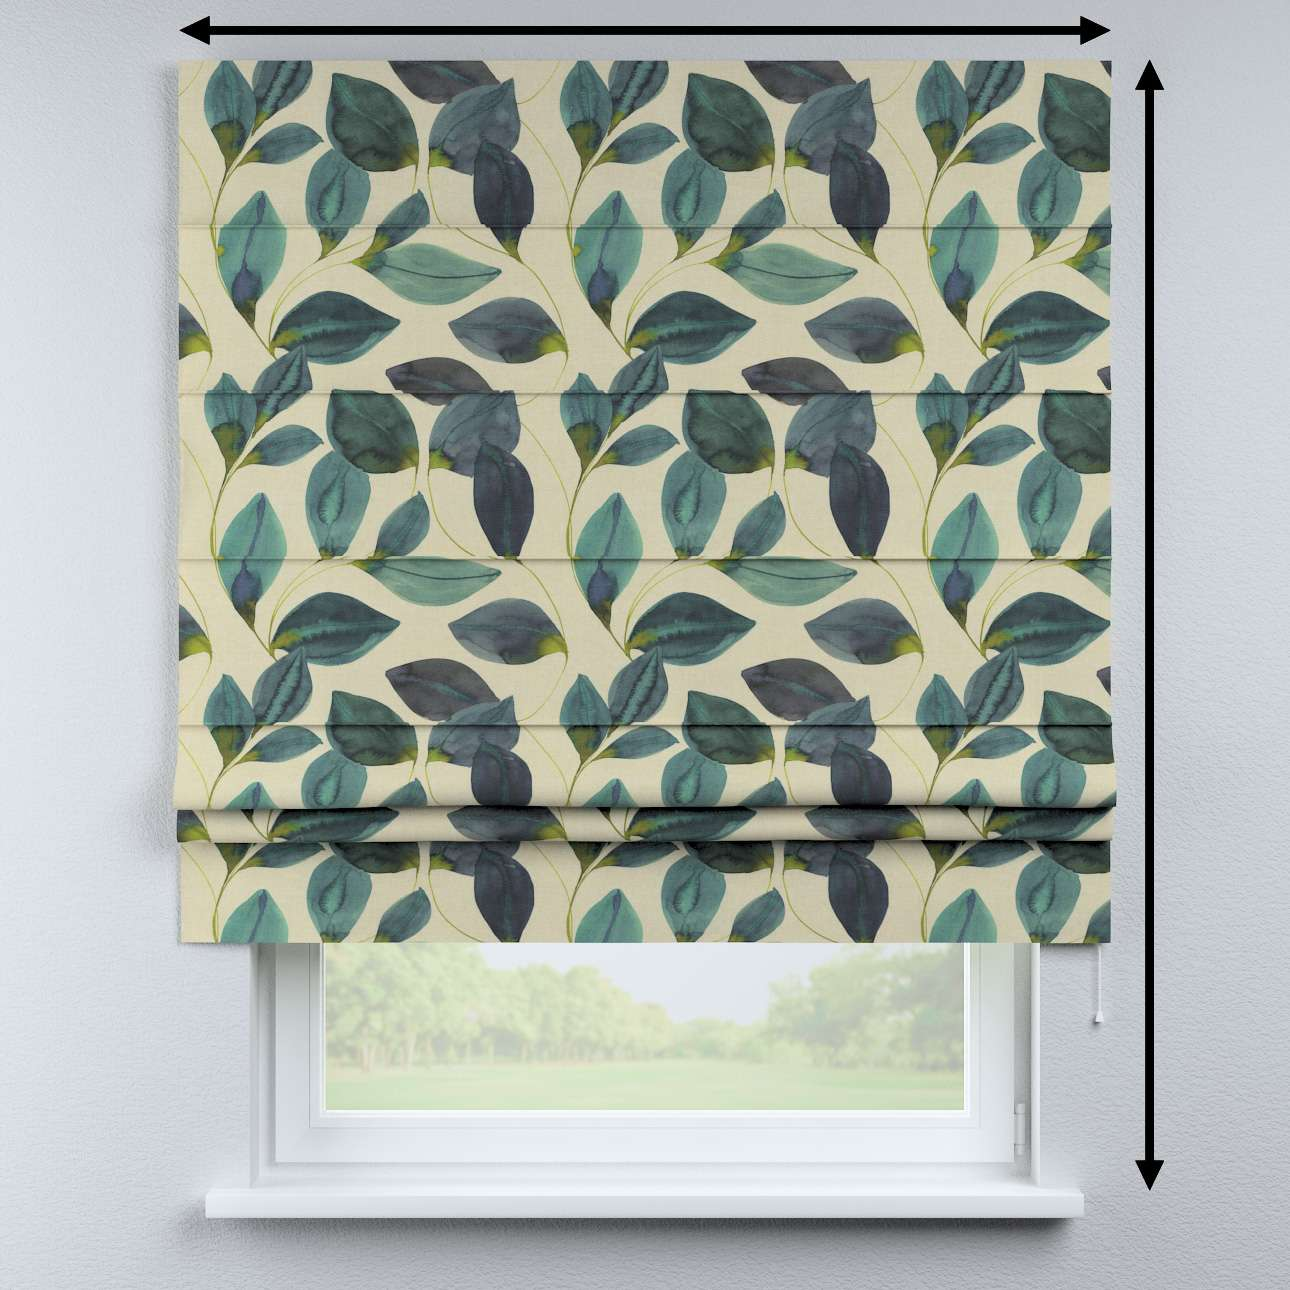 Padva roman blind in collection Abigail, fabric: 143-15